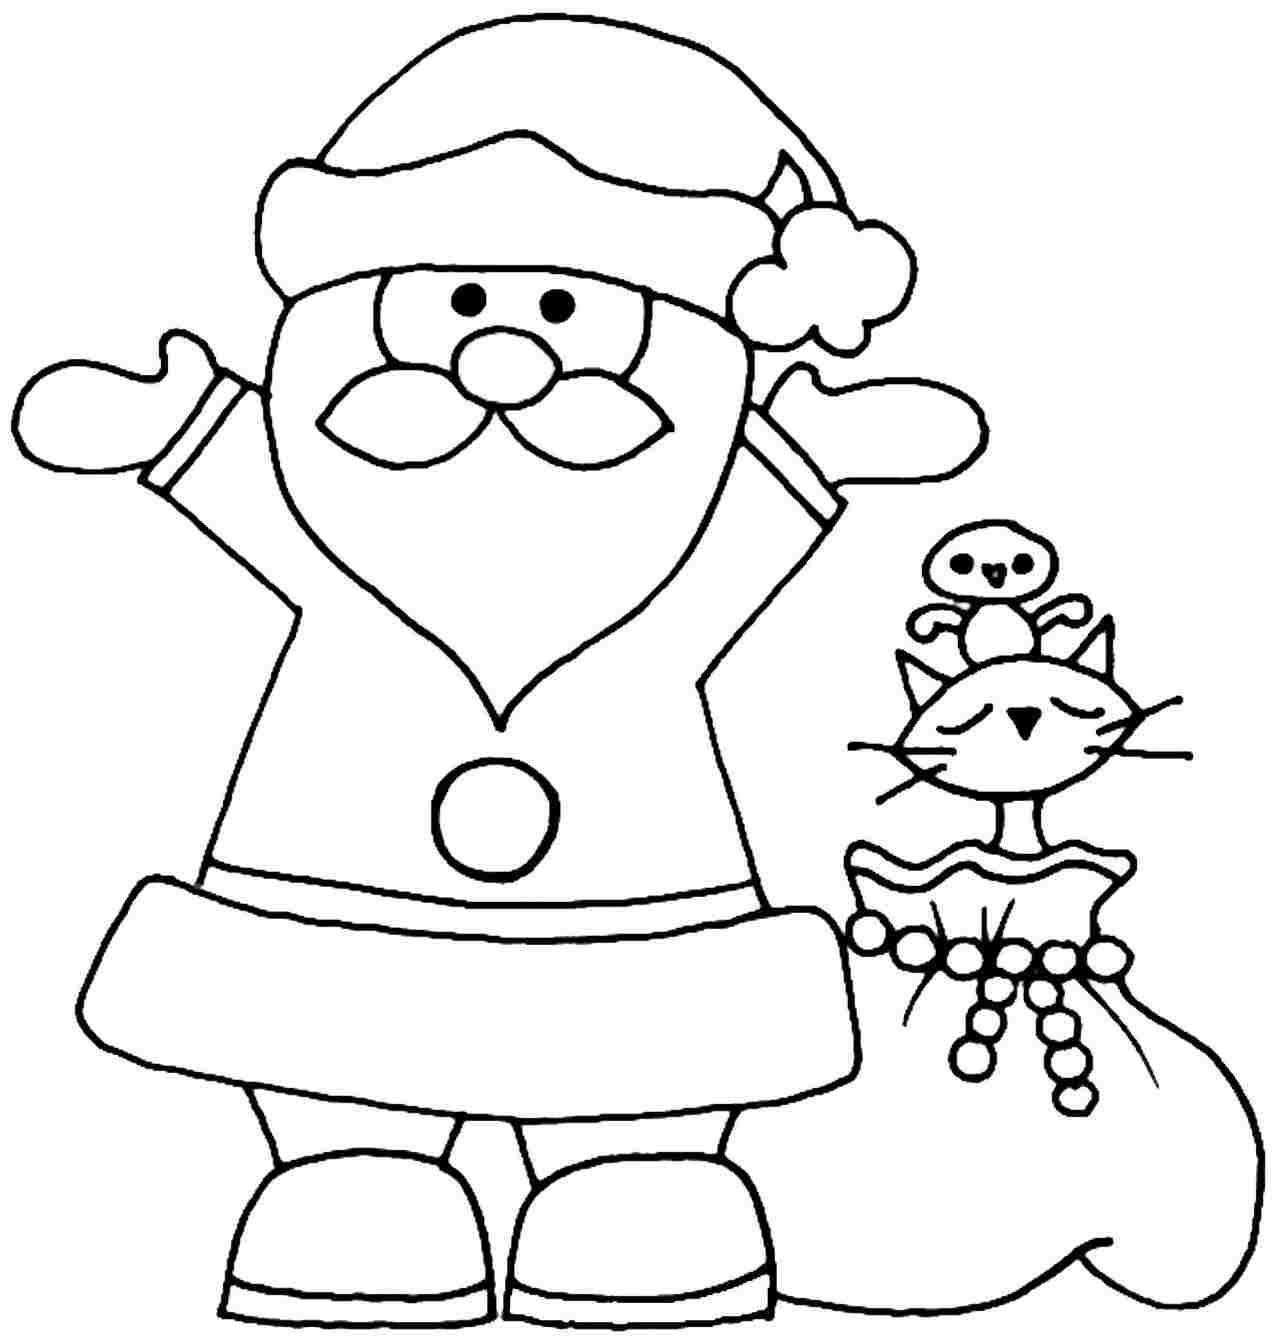 Christmas Santa Claus Coloring Pages With Pin By Shreya Thakur On Free Pinterest